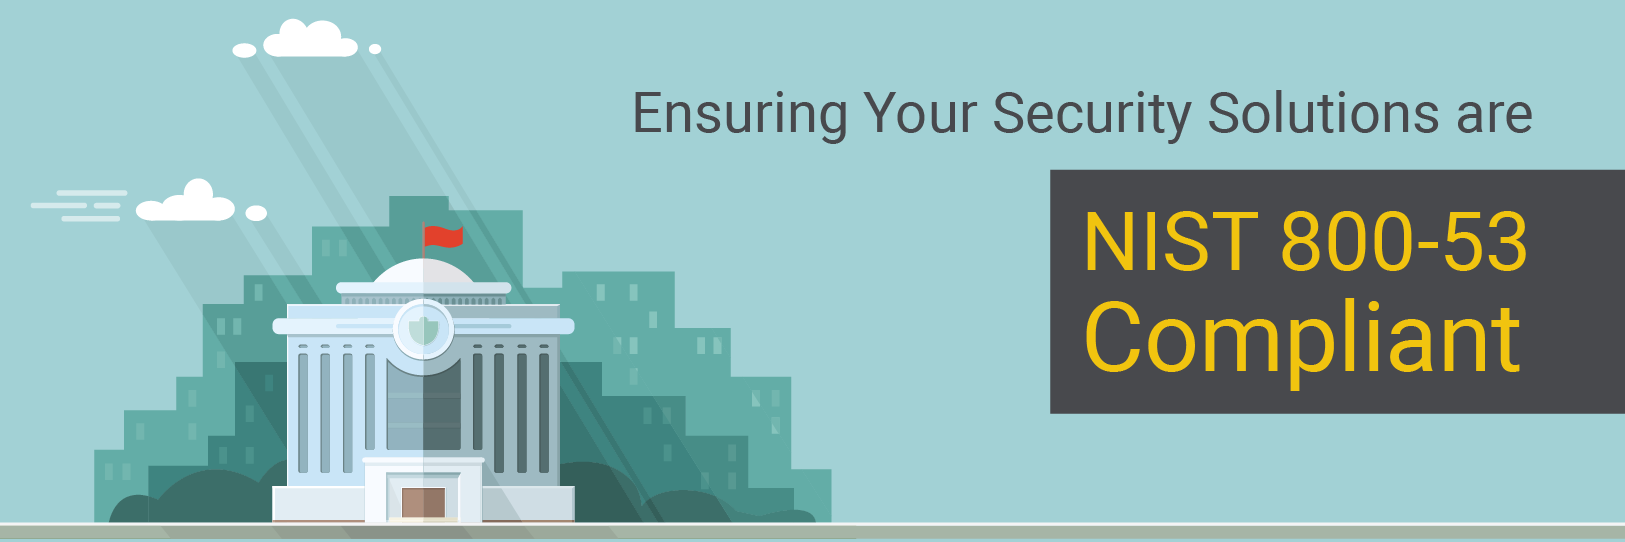 Ensuring Your Security Solutions are NIST 800-53 Compliant